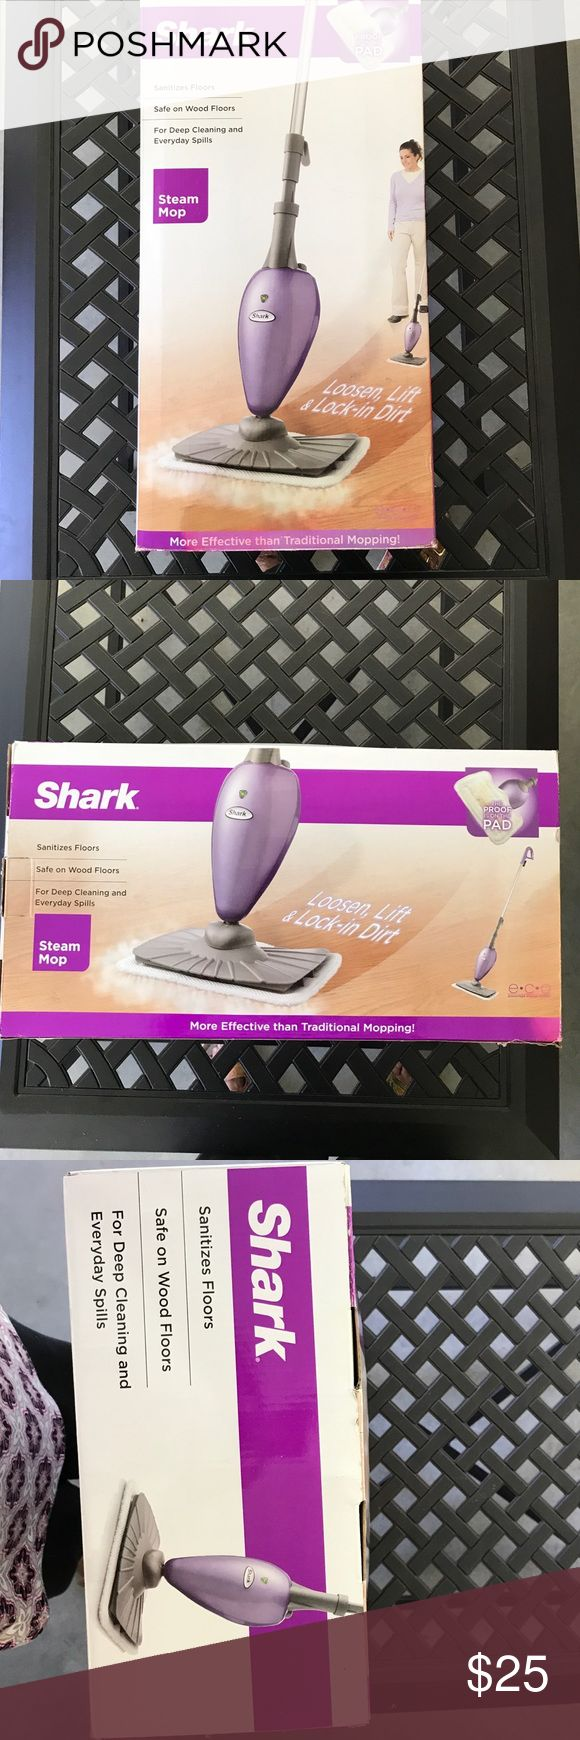 SHARK steam mop New, only used once Lightweight, adjuststable handle, uses tap water, quick start up, 2  micro fiber pads, safe for wood floors also! SHARK Other